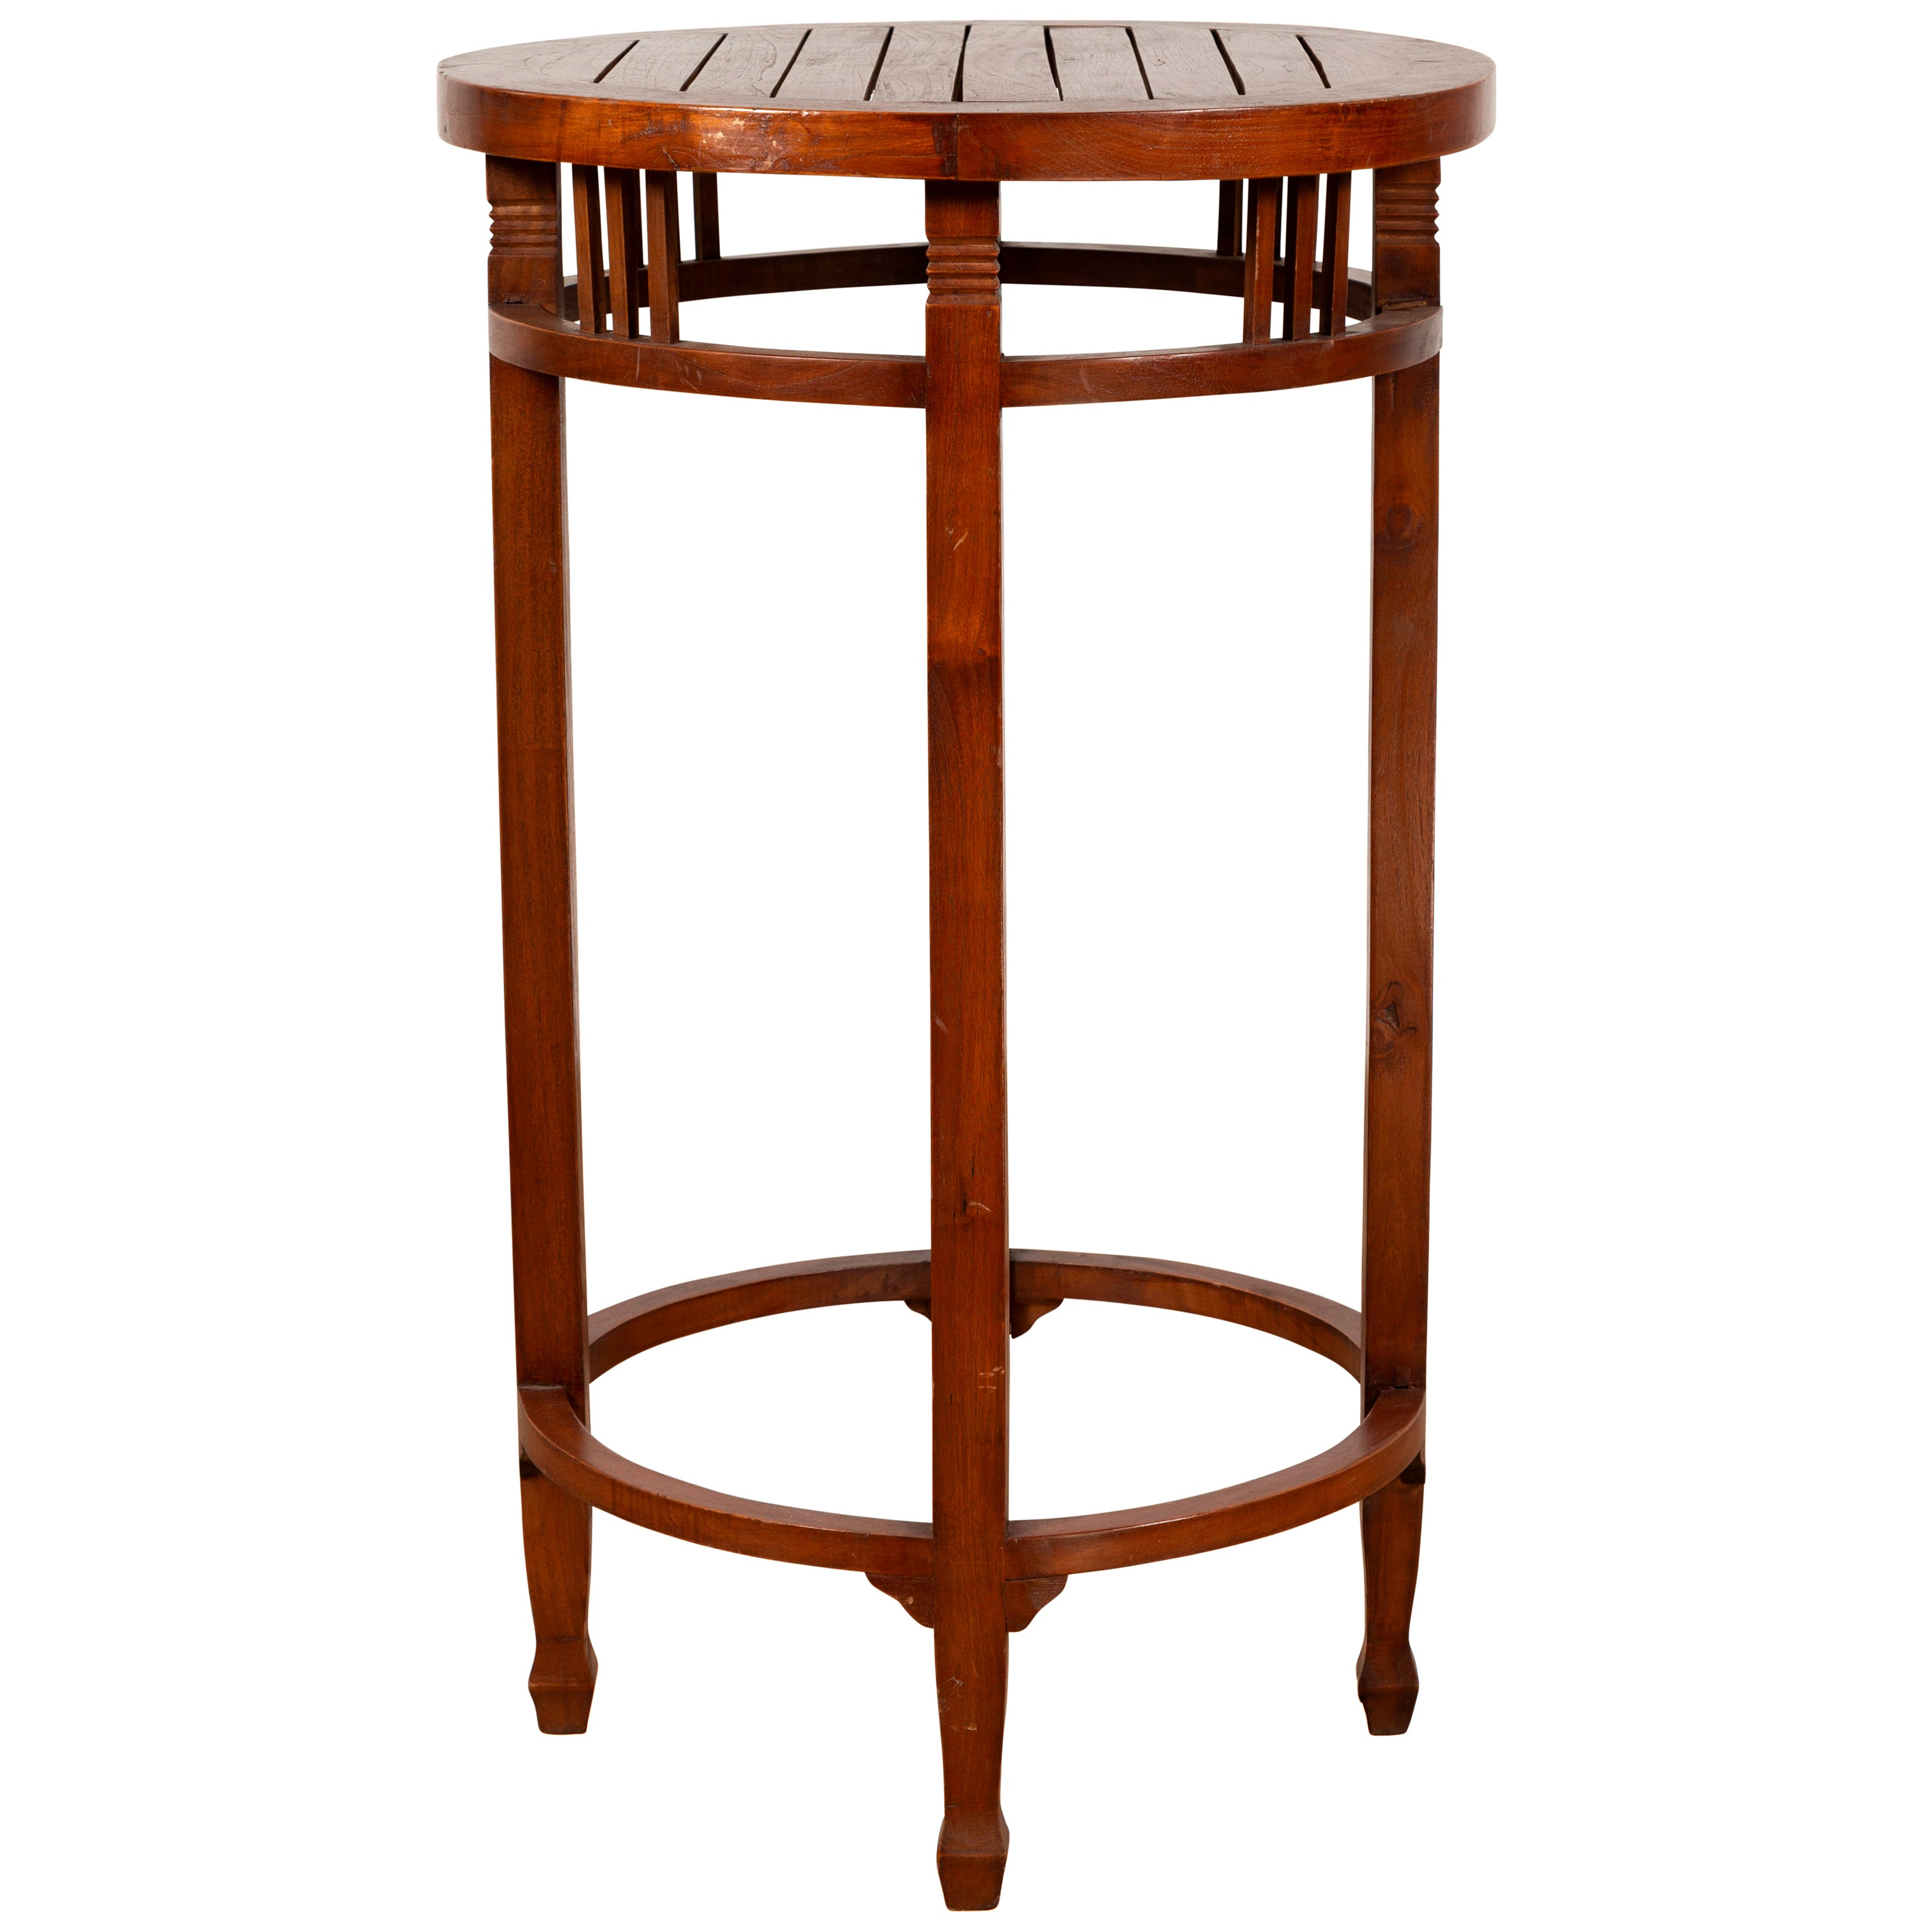 19th Century Indonesian Round Pedestal Table with Pierced Apron and Stretchers